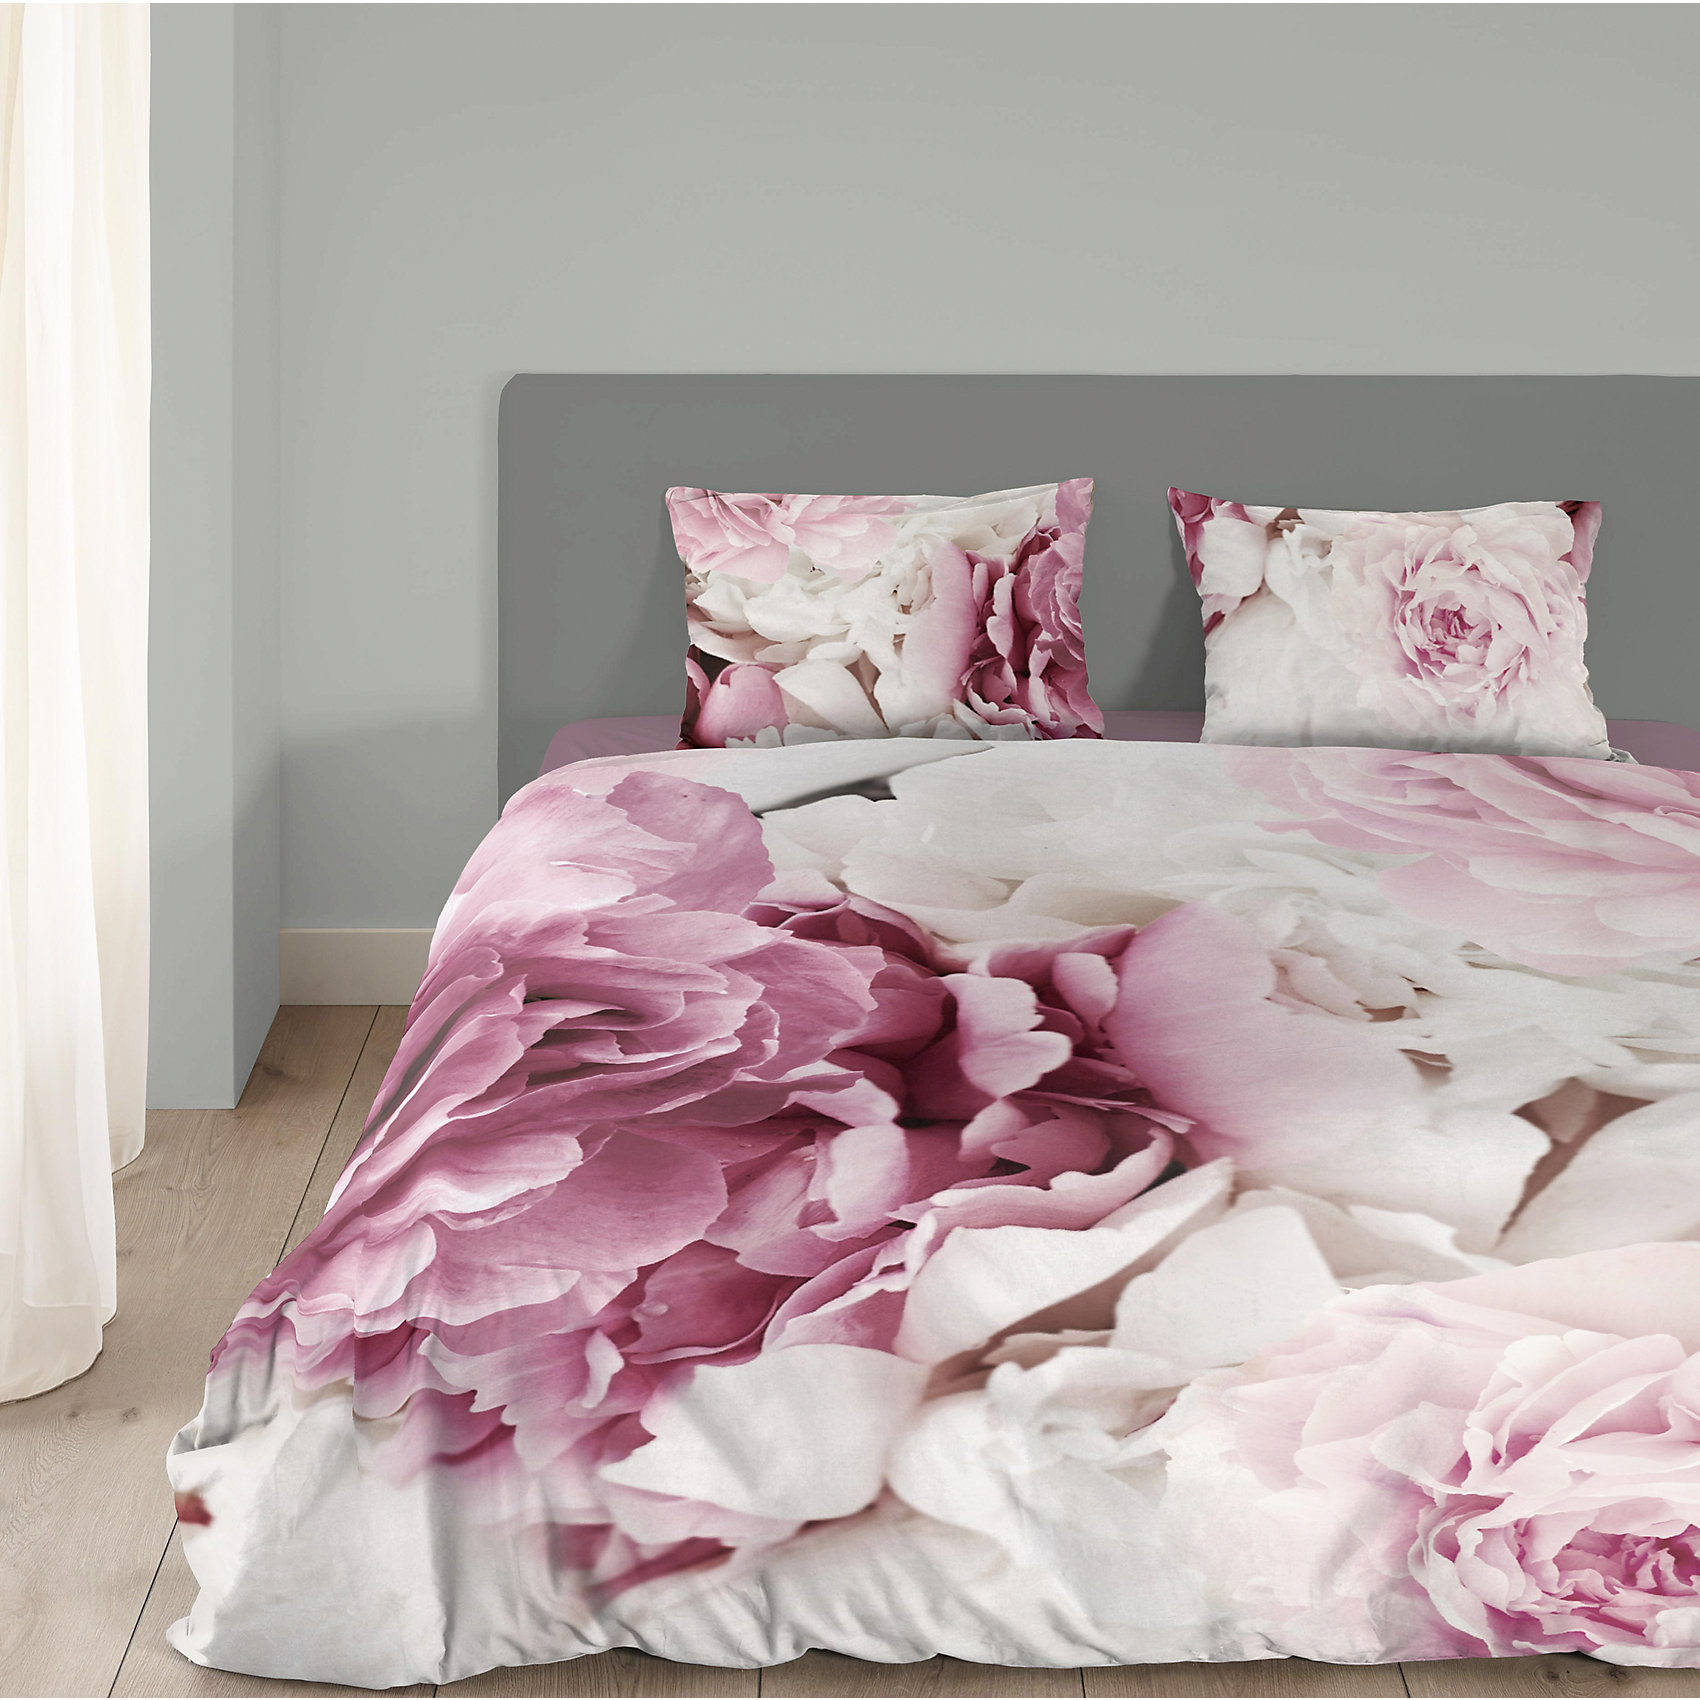 Neu Good Morning Bedlinens Bettwäsche Peonies 6057566 Rosaweiß Ebay